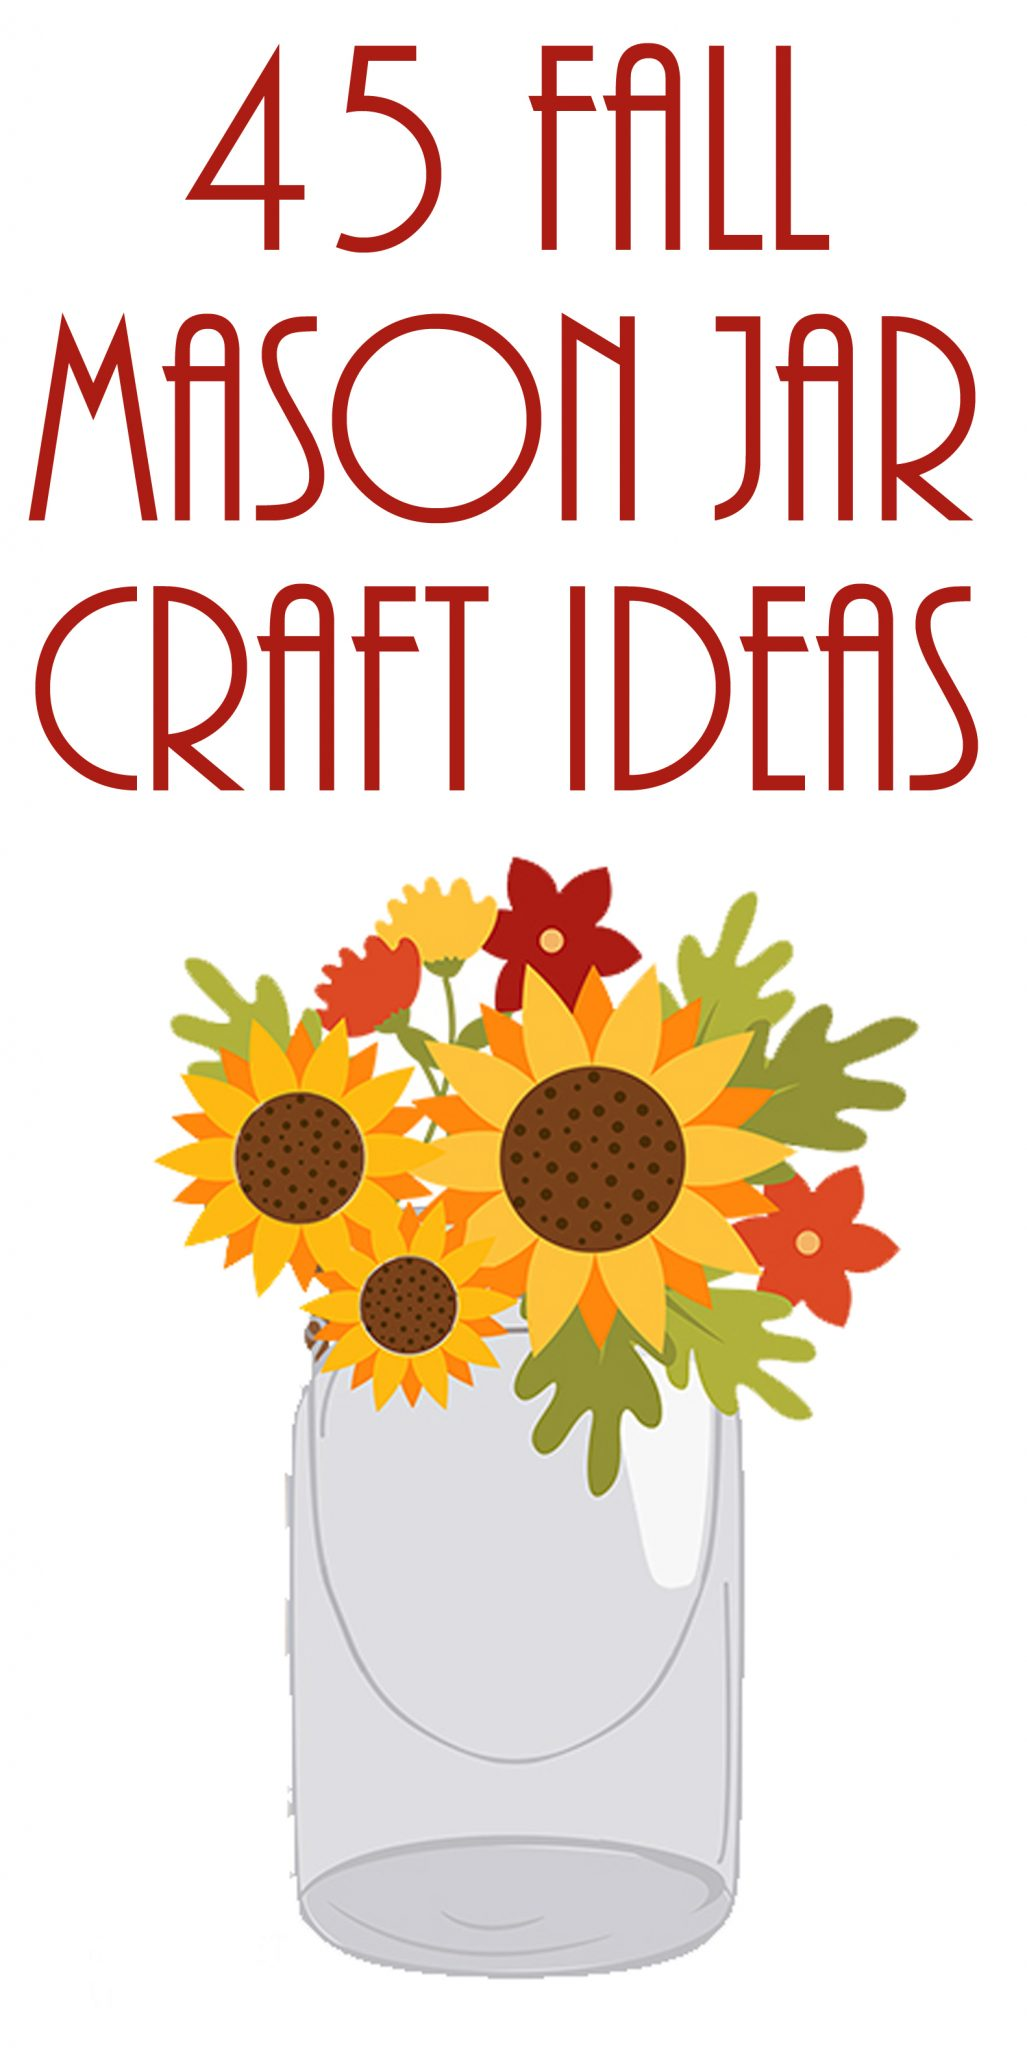 Decorative jars for fall - 45 mason jar crafts that are perfect for autumn!